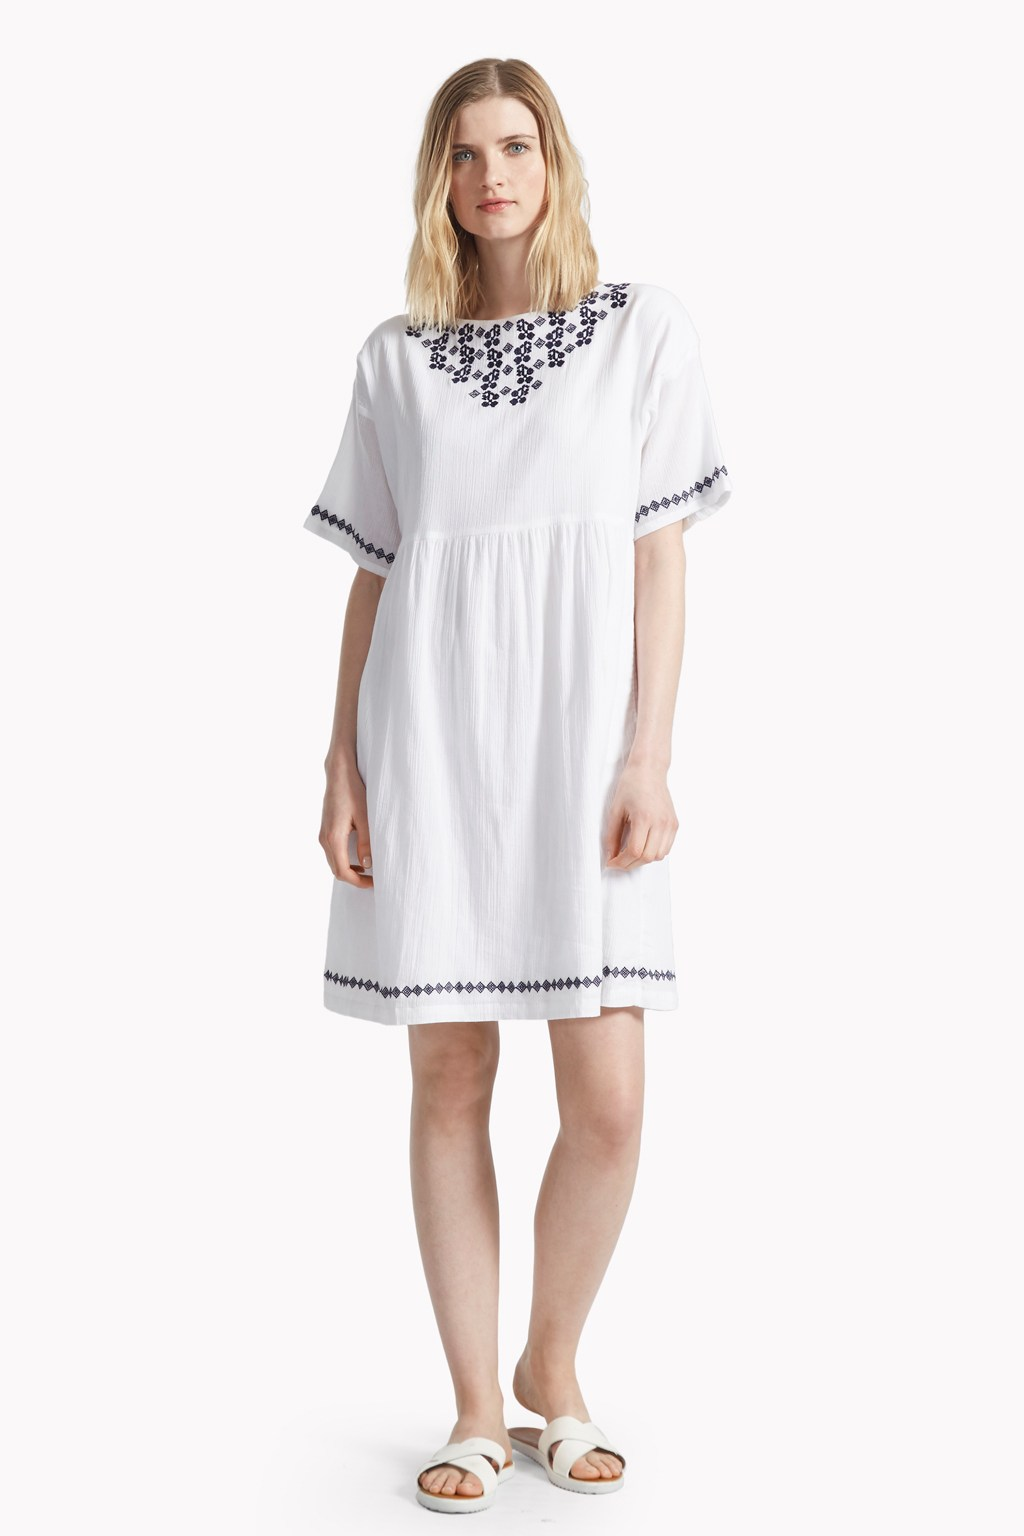 For Sale Cheap Authentic Womens Seacrest Stitch Embroidered Dress Great Plains Clearance Shop Offer Browse Online 100% Guaranteed Clearance u0QJIB